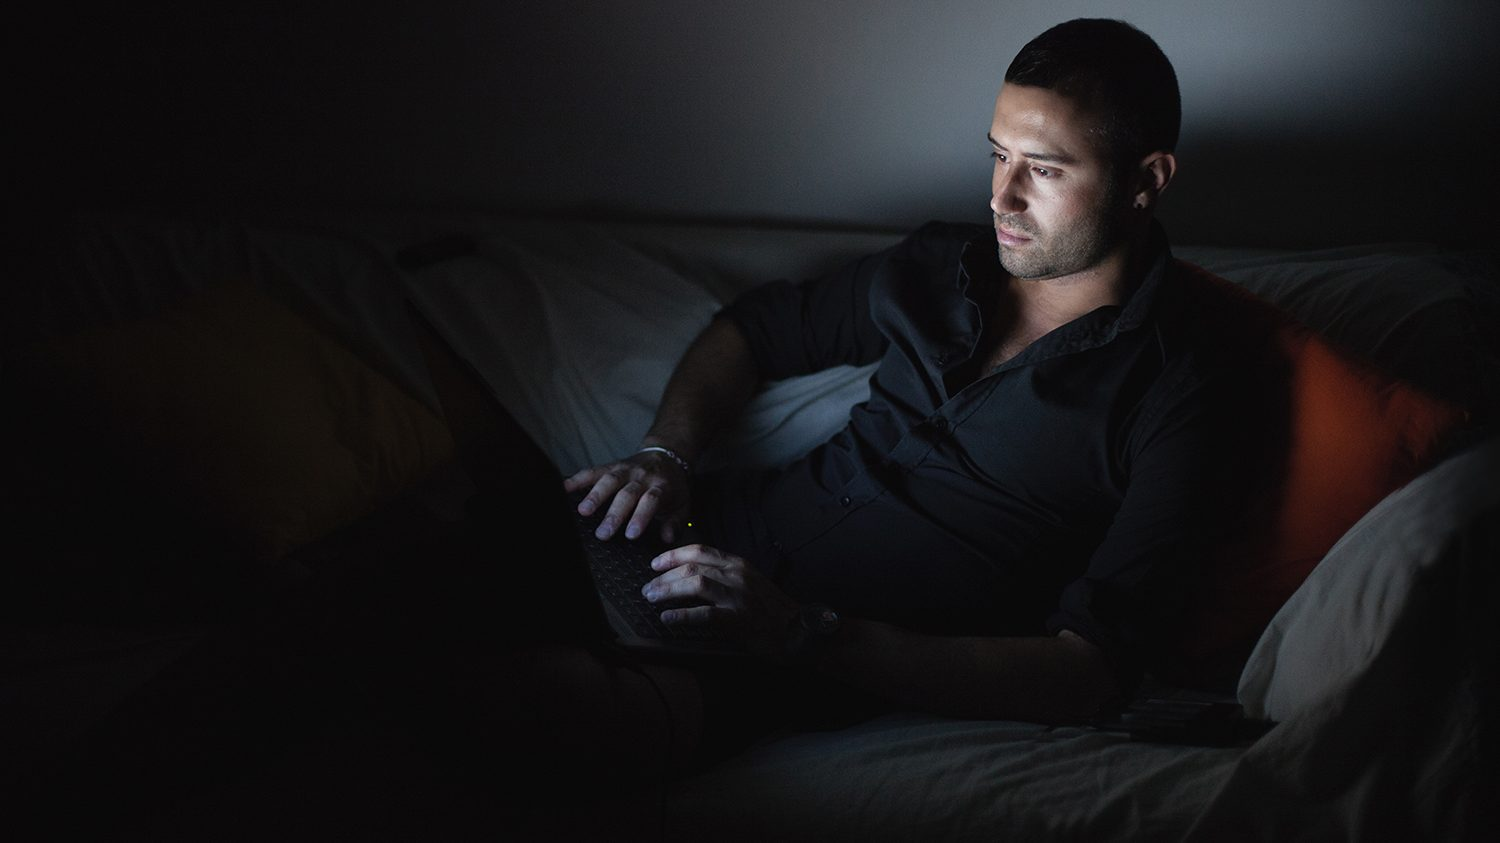 Man lying on sofa and working on his laptop at night.